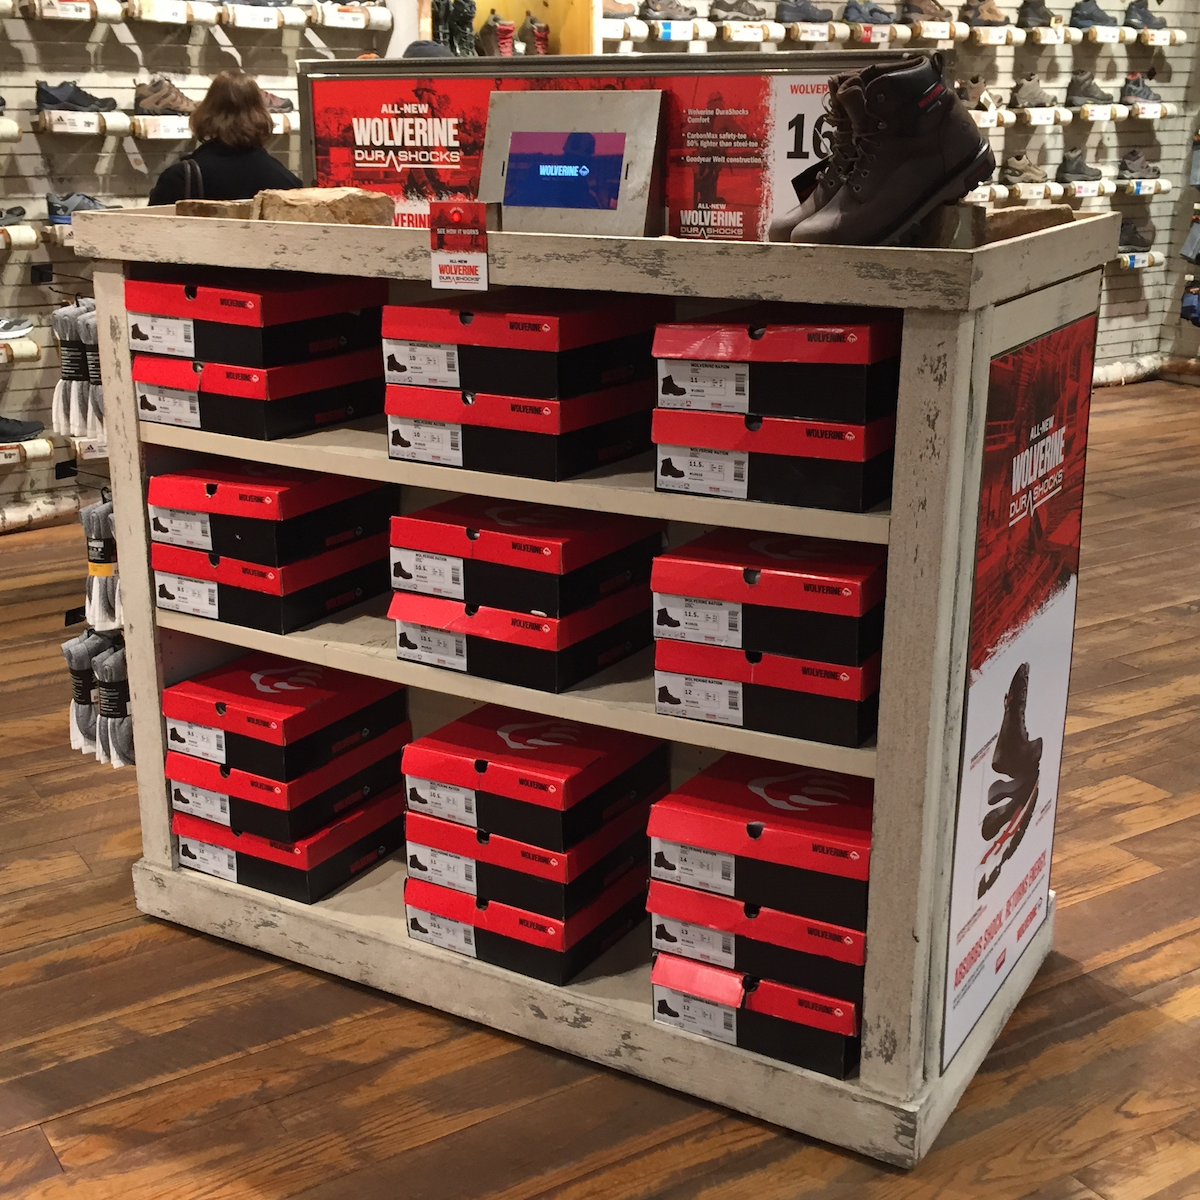 Wolverine Footwear Gondola   AXIS was selected to collaborate on an interactive gondola unit to increase awareness about new innovative Wolverine footwear at select Bass Pro Shops.